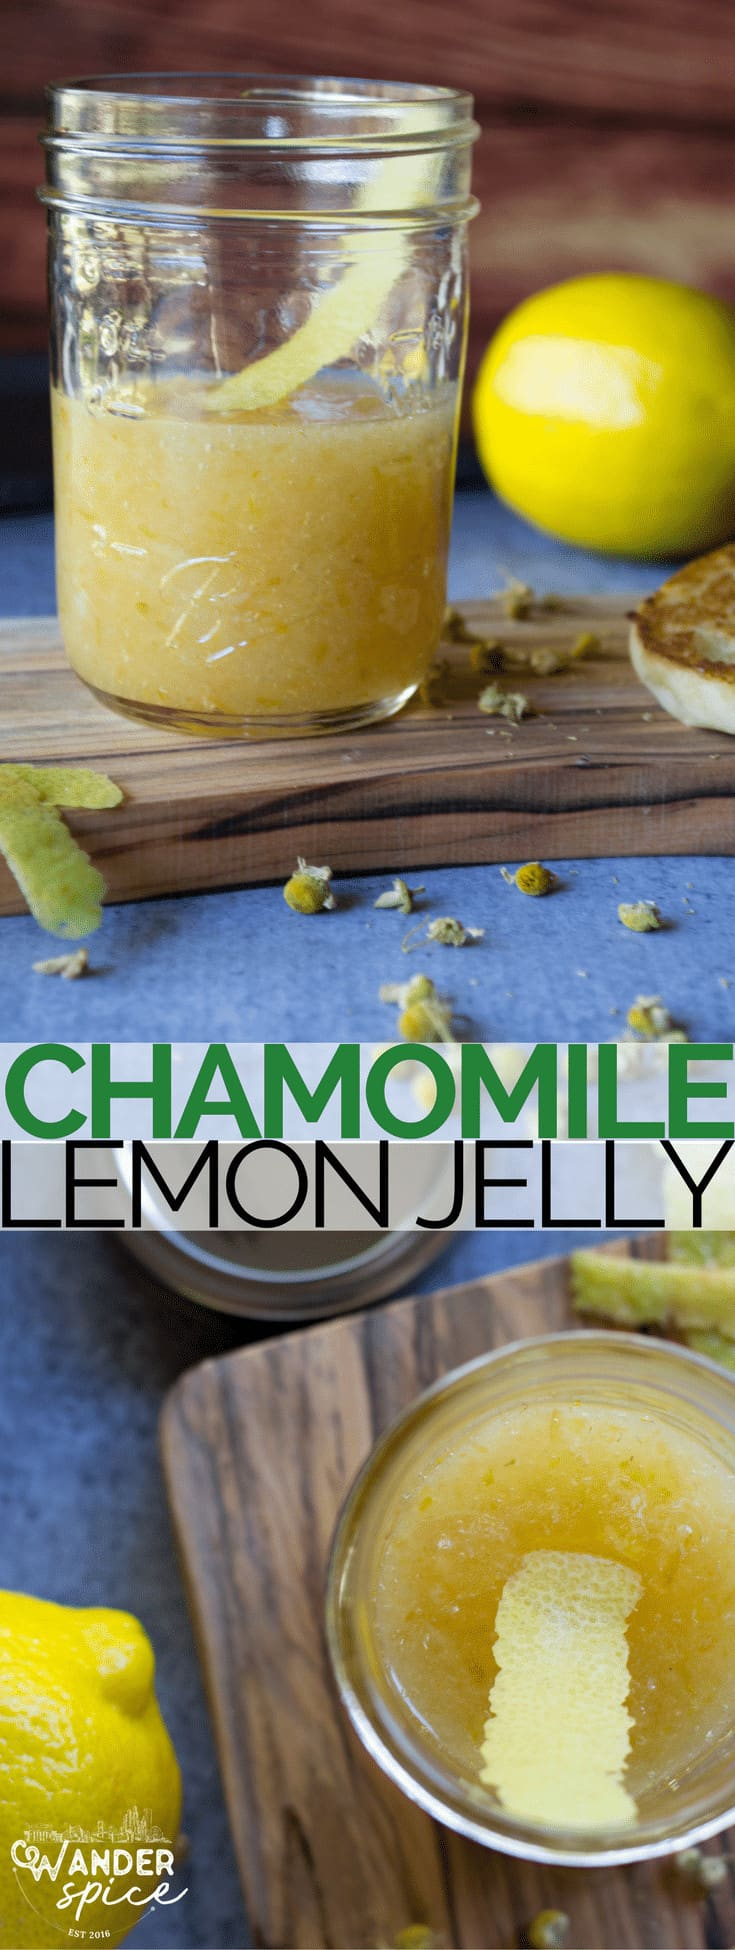 Lemon Jelly with Chamomile